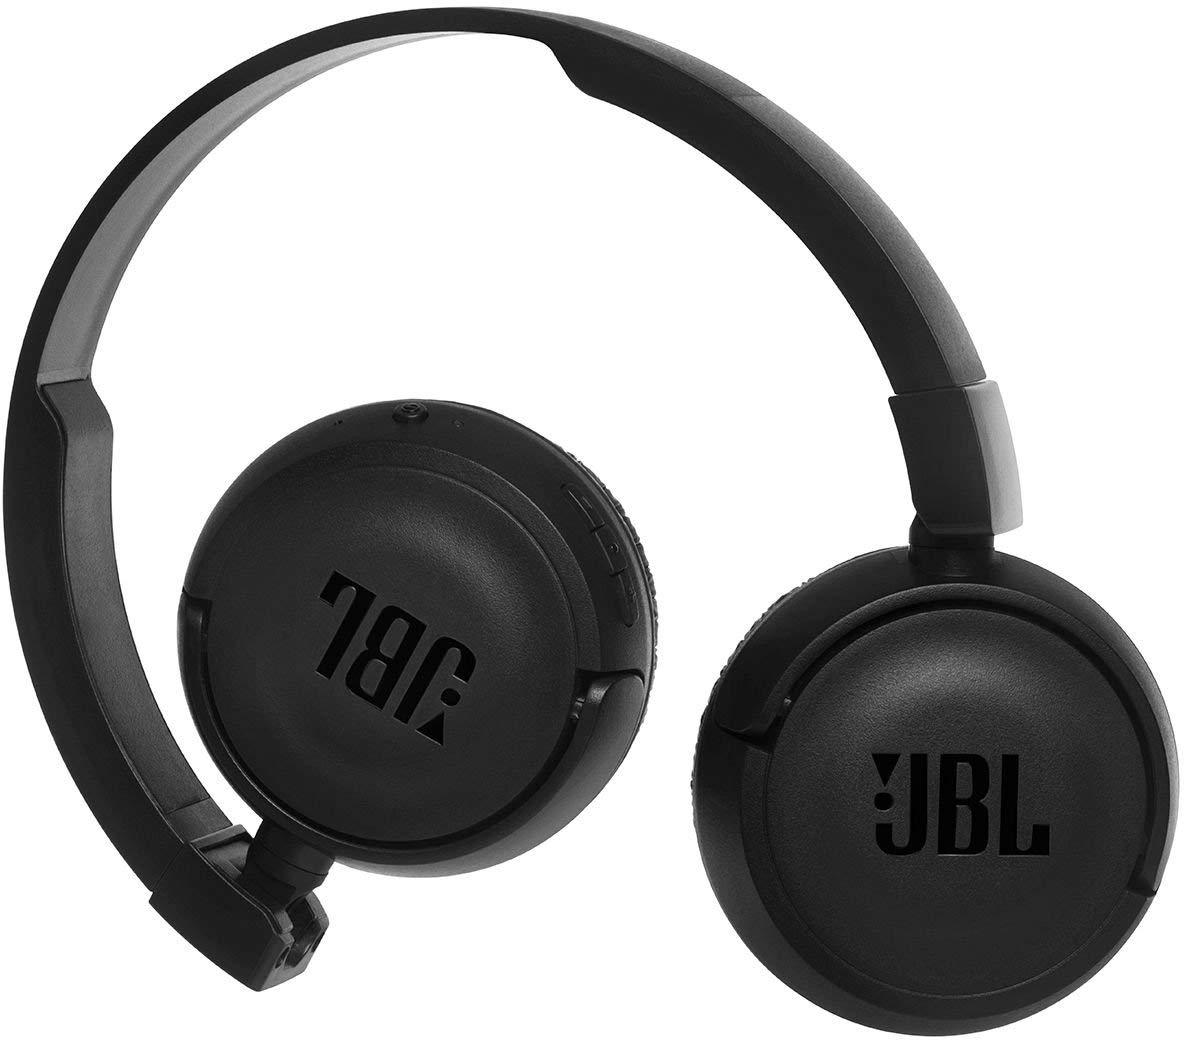 Le Casque Bluetooth JBL harman T450BT